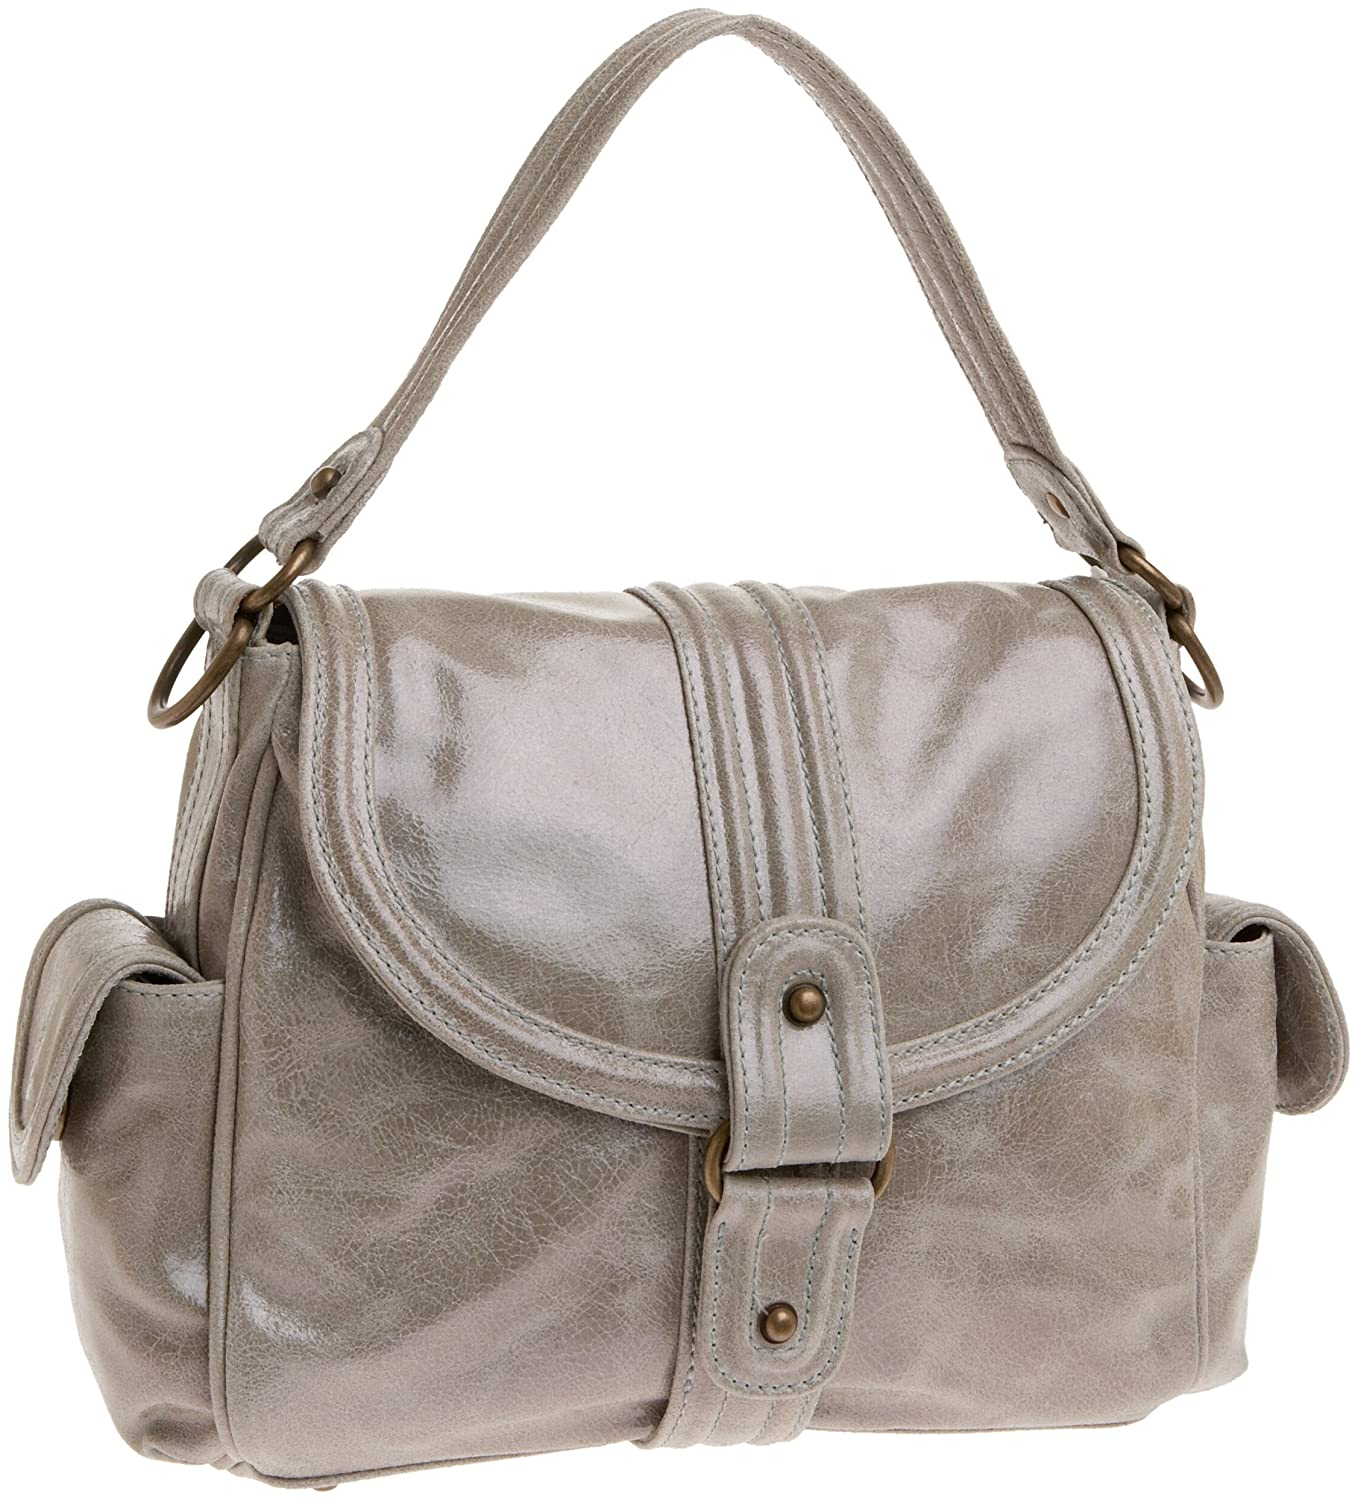 KALE Cameron Satchel - Free Overnight Shipping & Return Shipping: Endless.com from endless.com